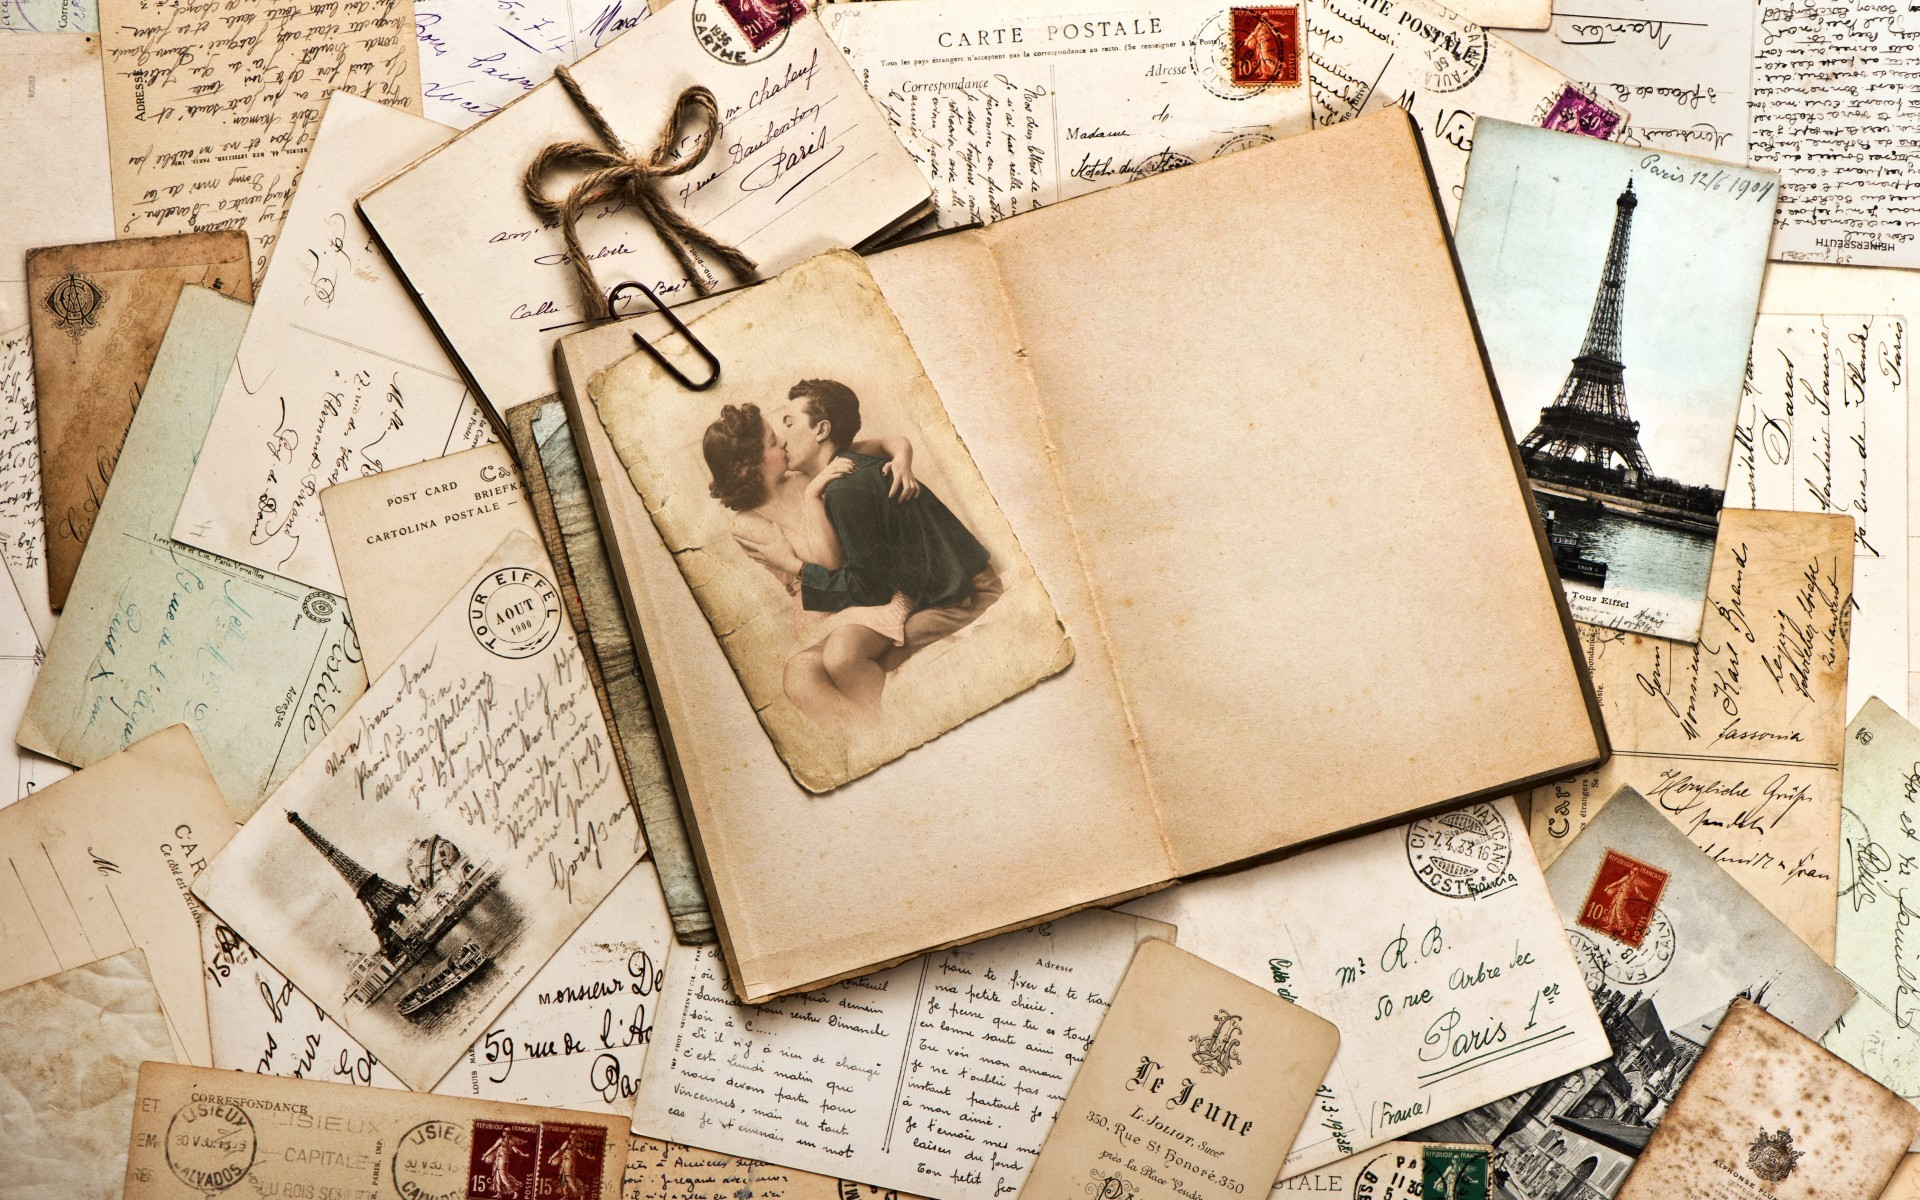 Resize & Crop It In Available Screen Resolutions - Vintage Love Letter - HD Wallpaper